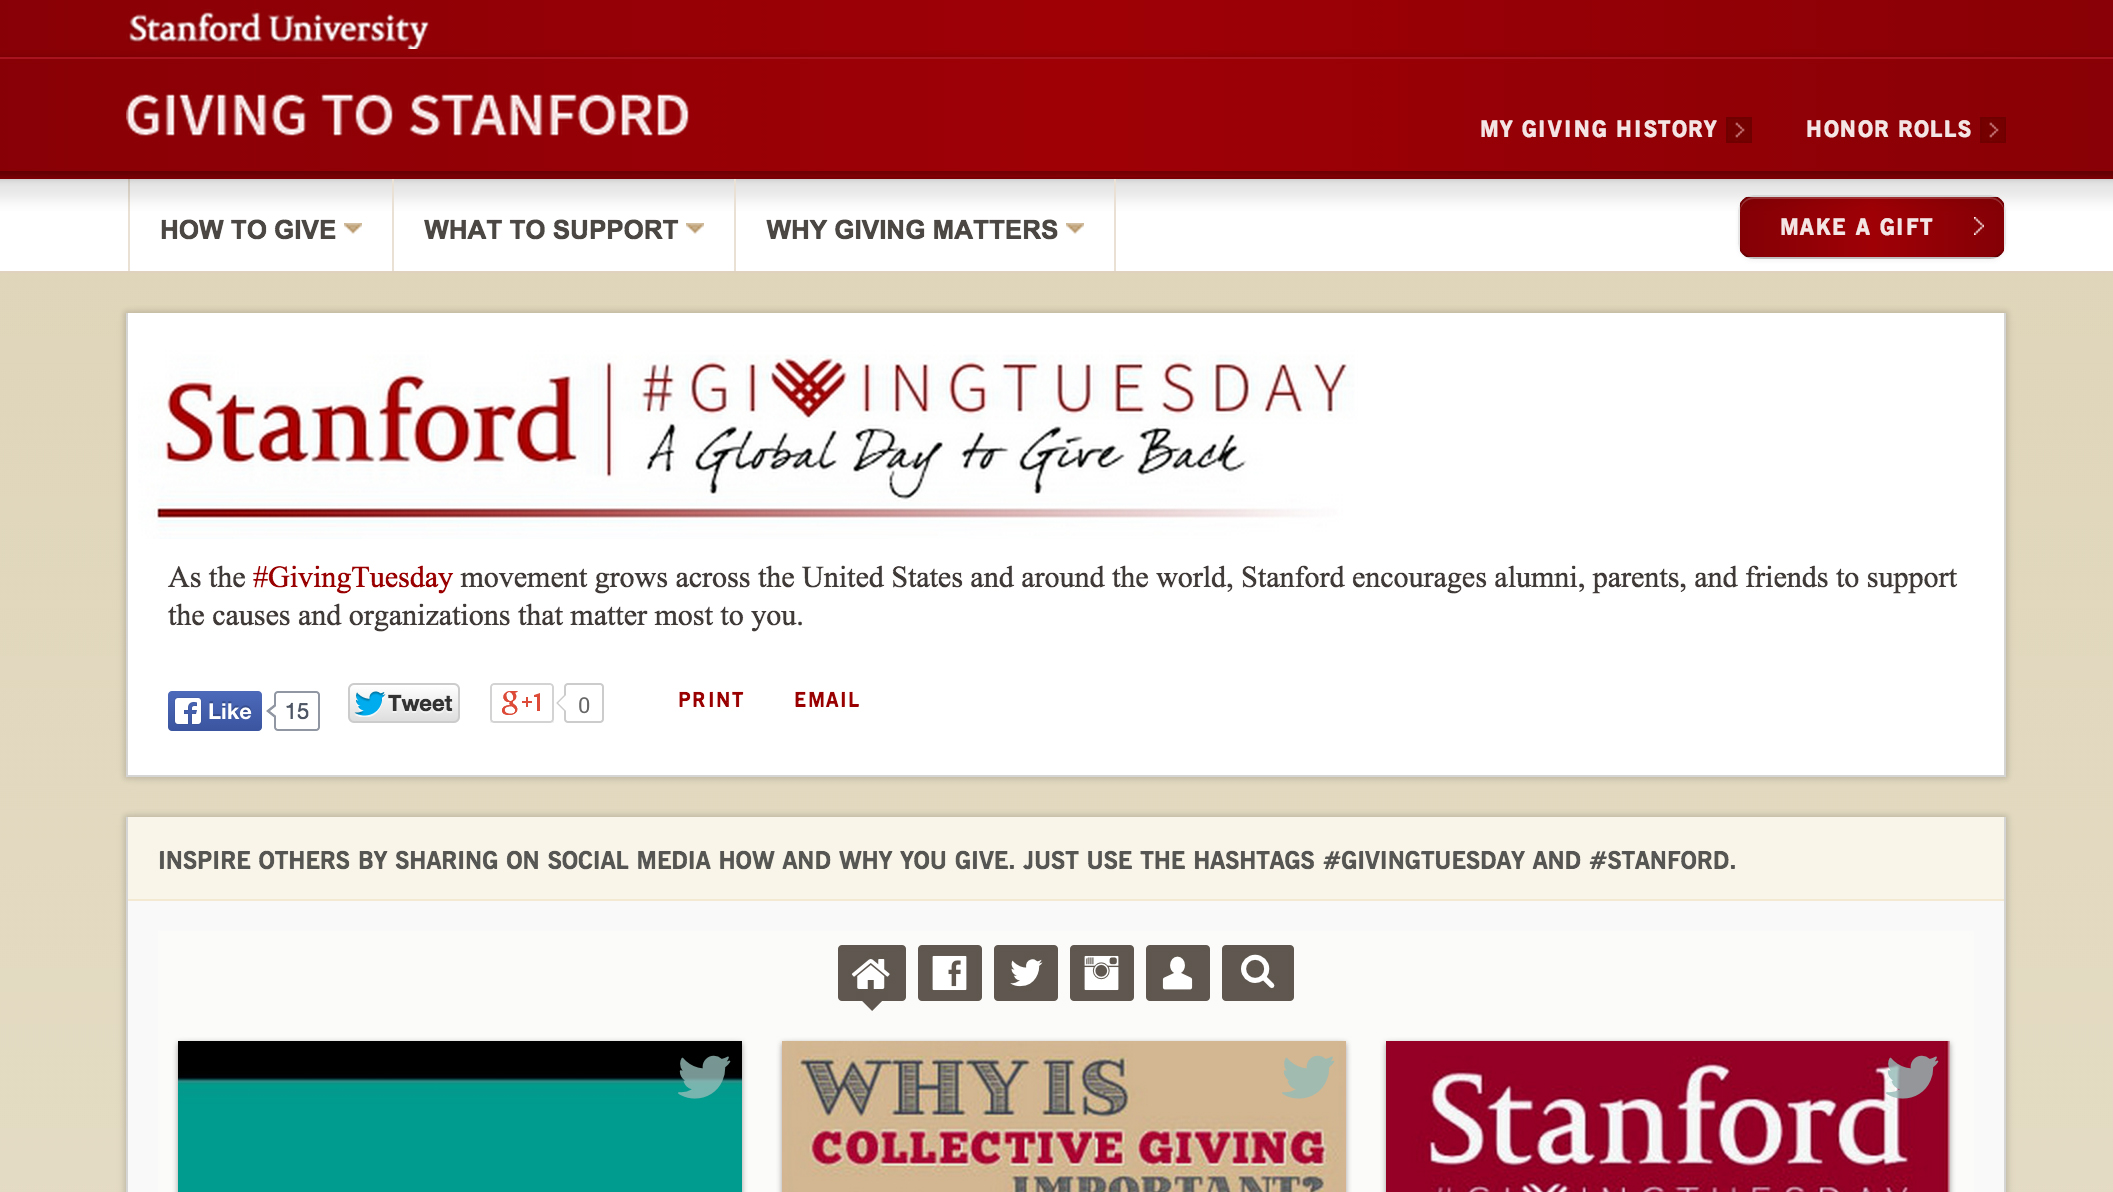 A screenshot of the Stanford #GivingTuesday site encouraging students, faculty, staff alumni and others affiliated with the Stanford community to give.